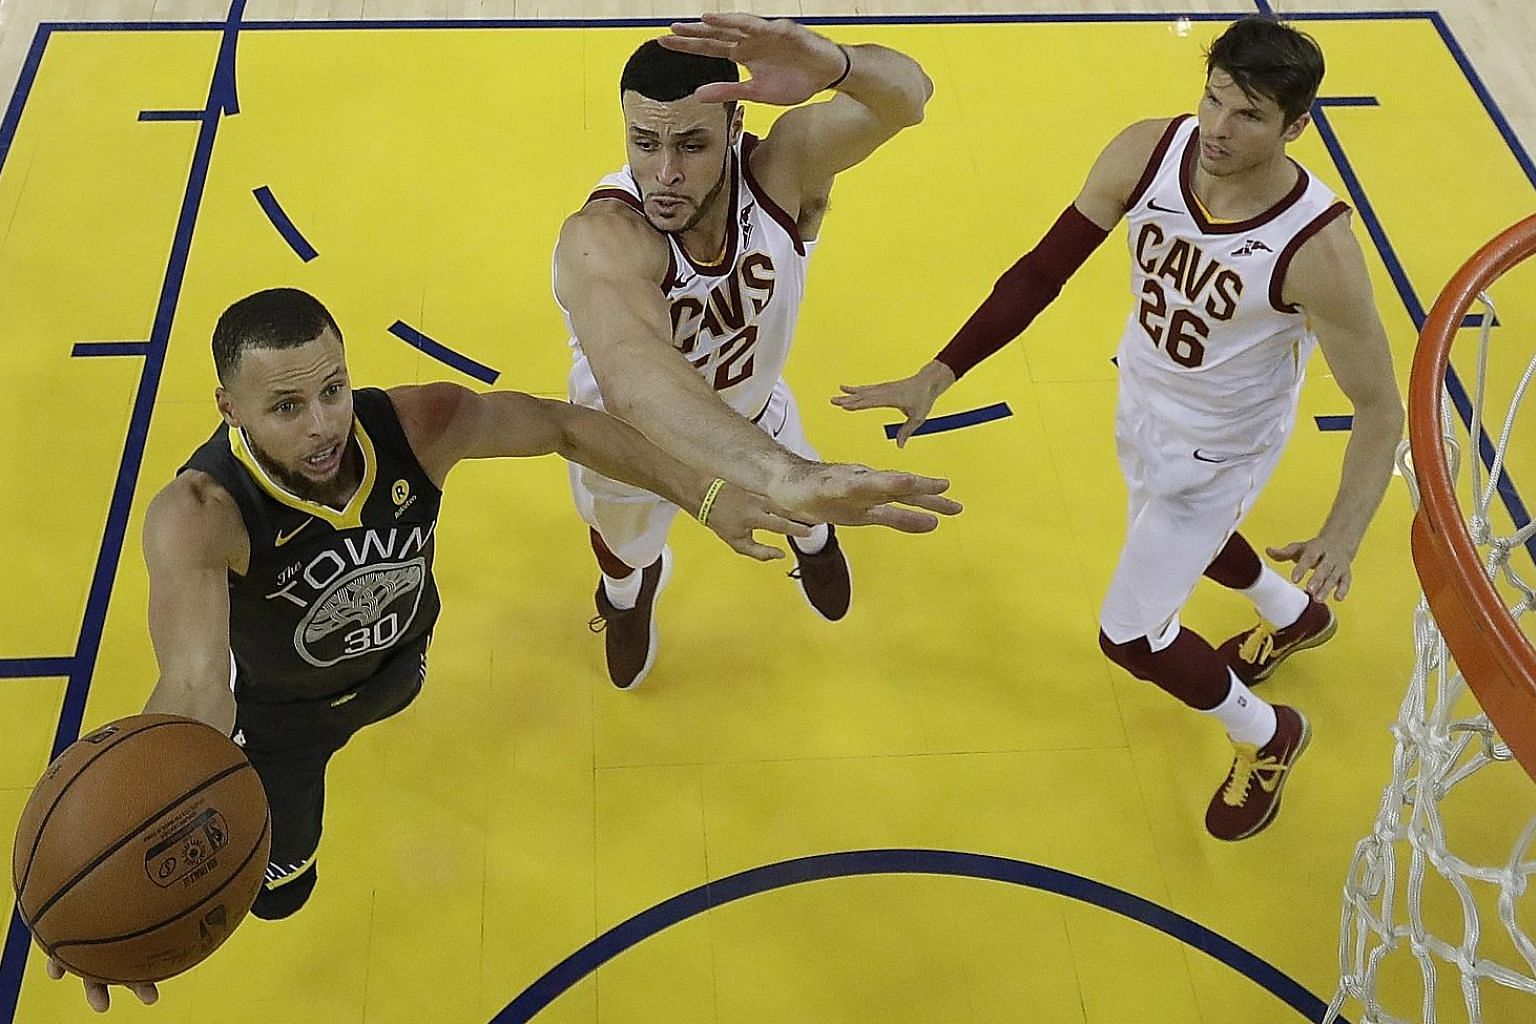 Stephen Curry of the Golden State Warriors driving to the basket against Larry Nance (No. 22) and Kyle Korver of the Cleveland Cavaliers in the second half of Game Two of the NBA Finals on Sunday. Curry finished with 33 points, converting nine of 17